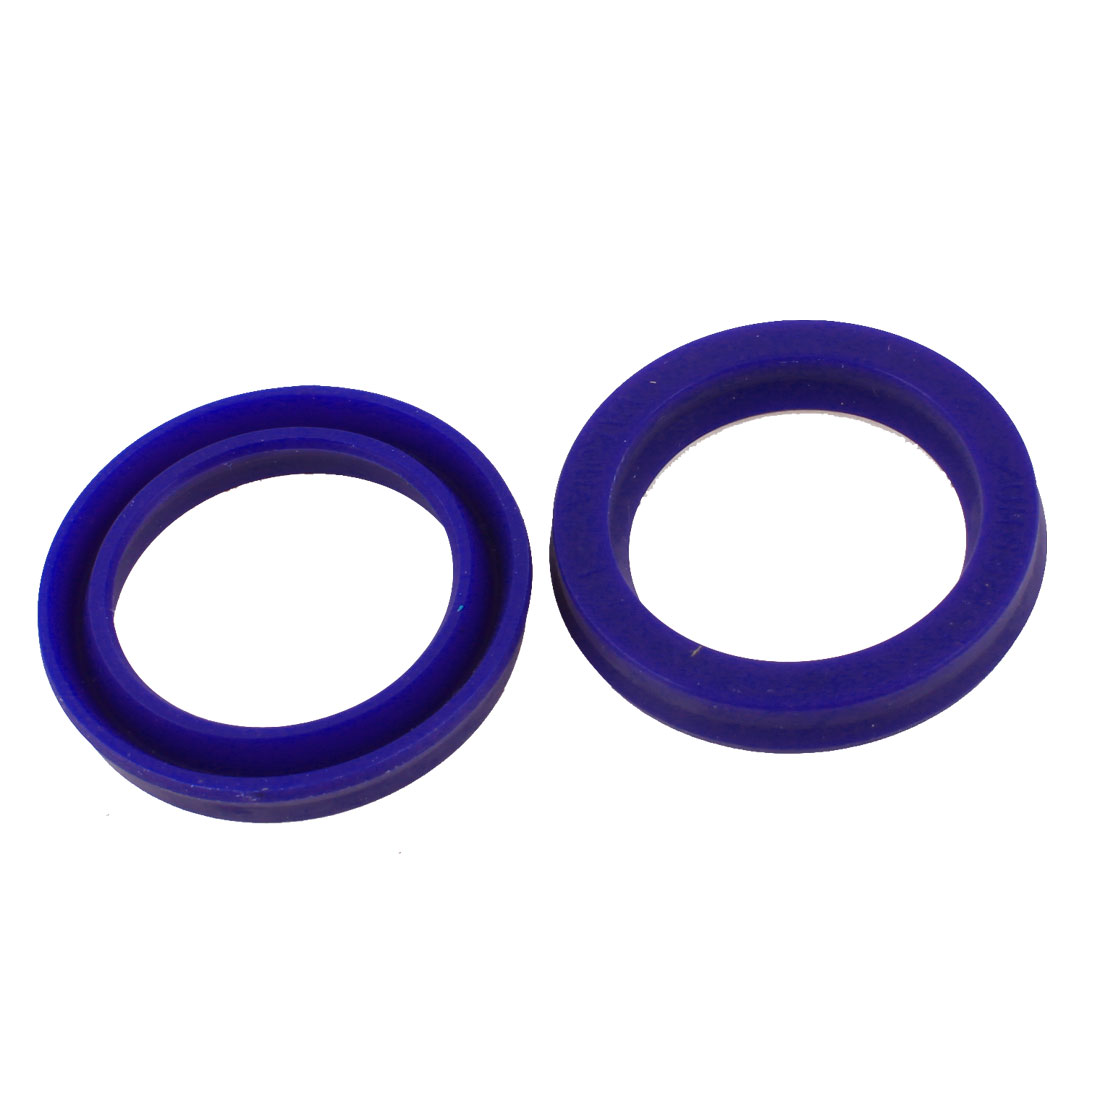 30mm x 45mm x 6mm Blue Polyurethane PU Dust Resistant Oil Seal Ring Pair